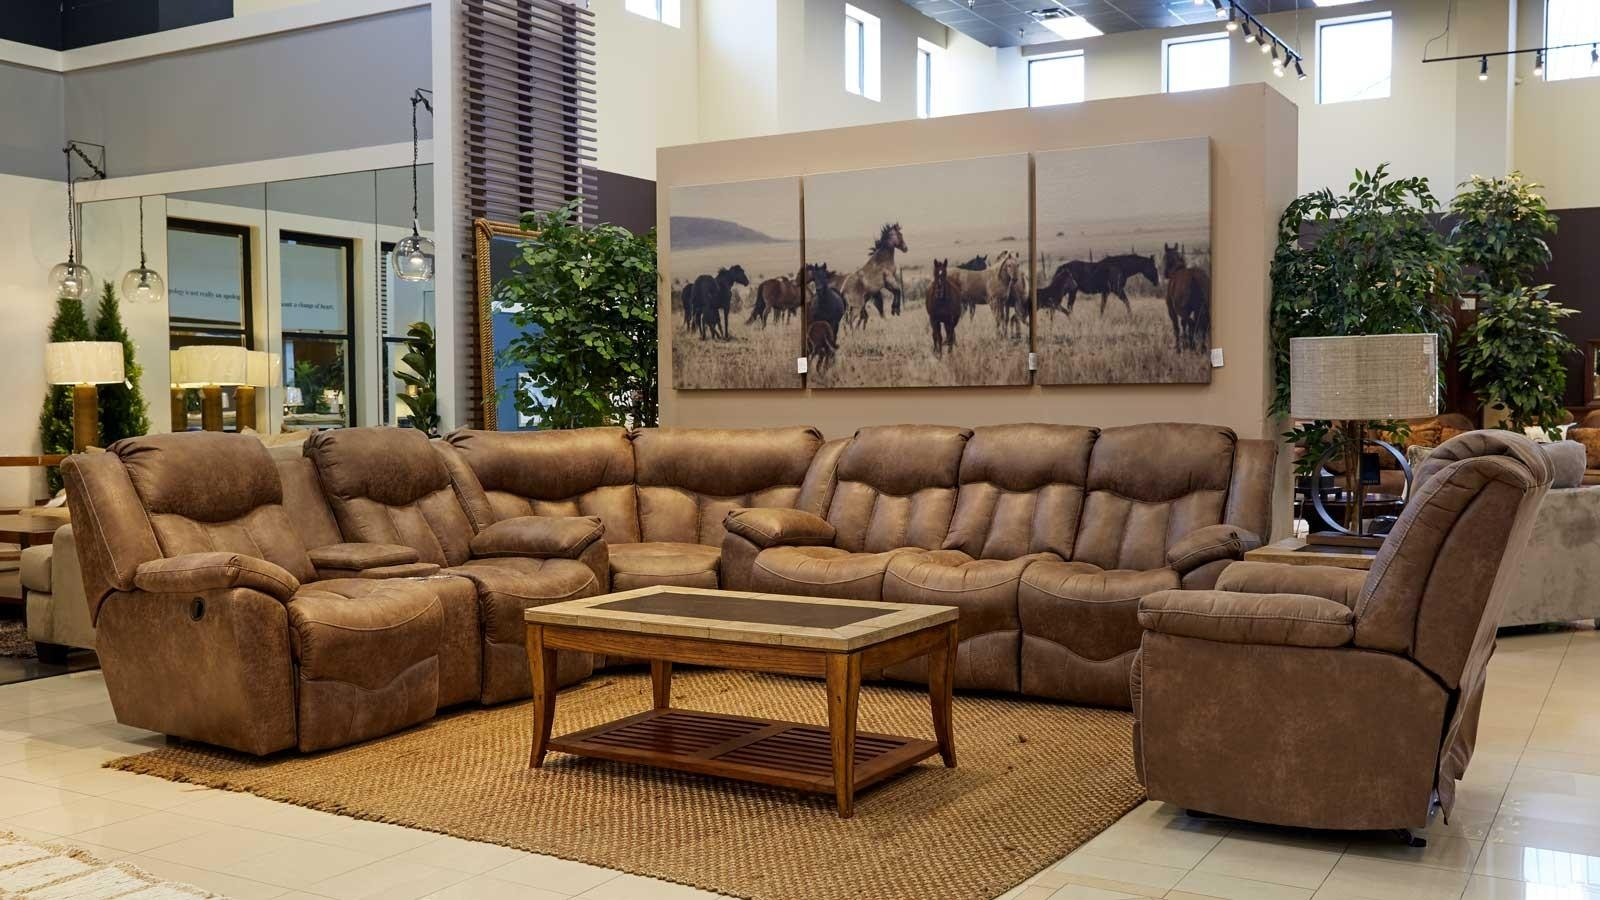 Reclining Sofas, Loveseats & Sectionals | With Regard To Sofas And Loveseats (View 2 of 20)